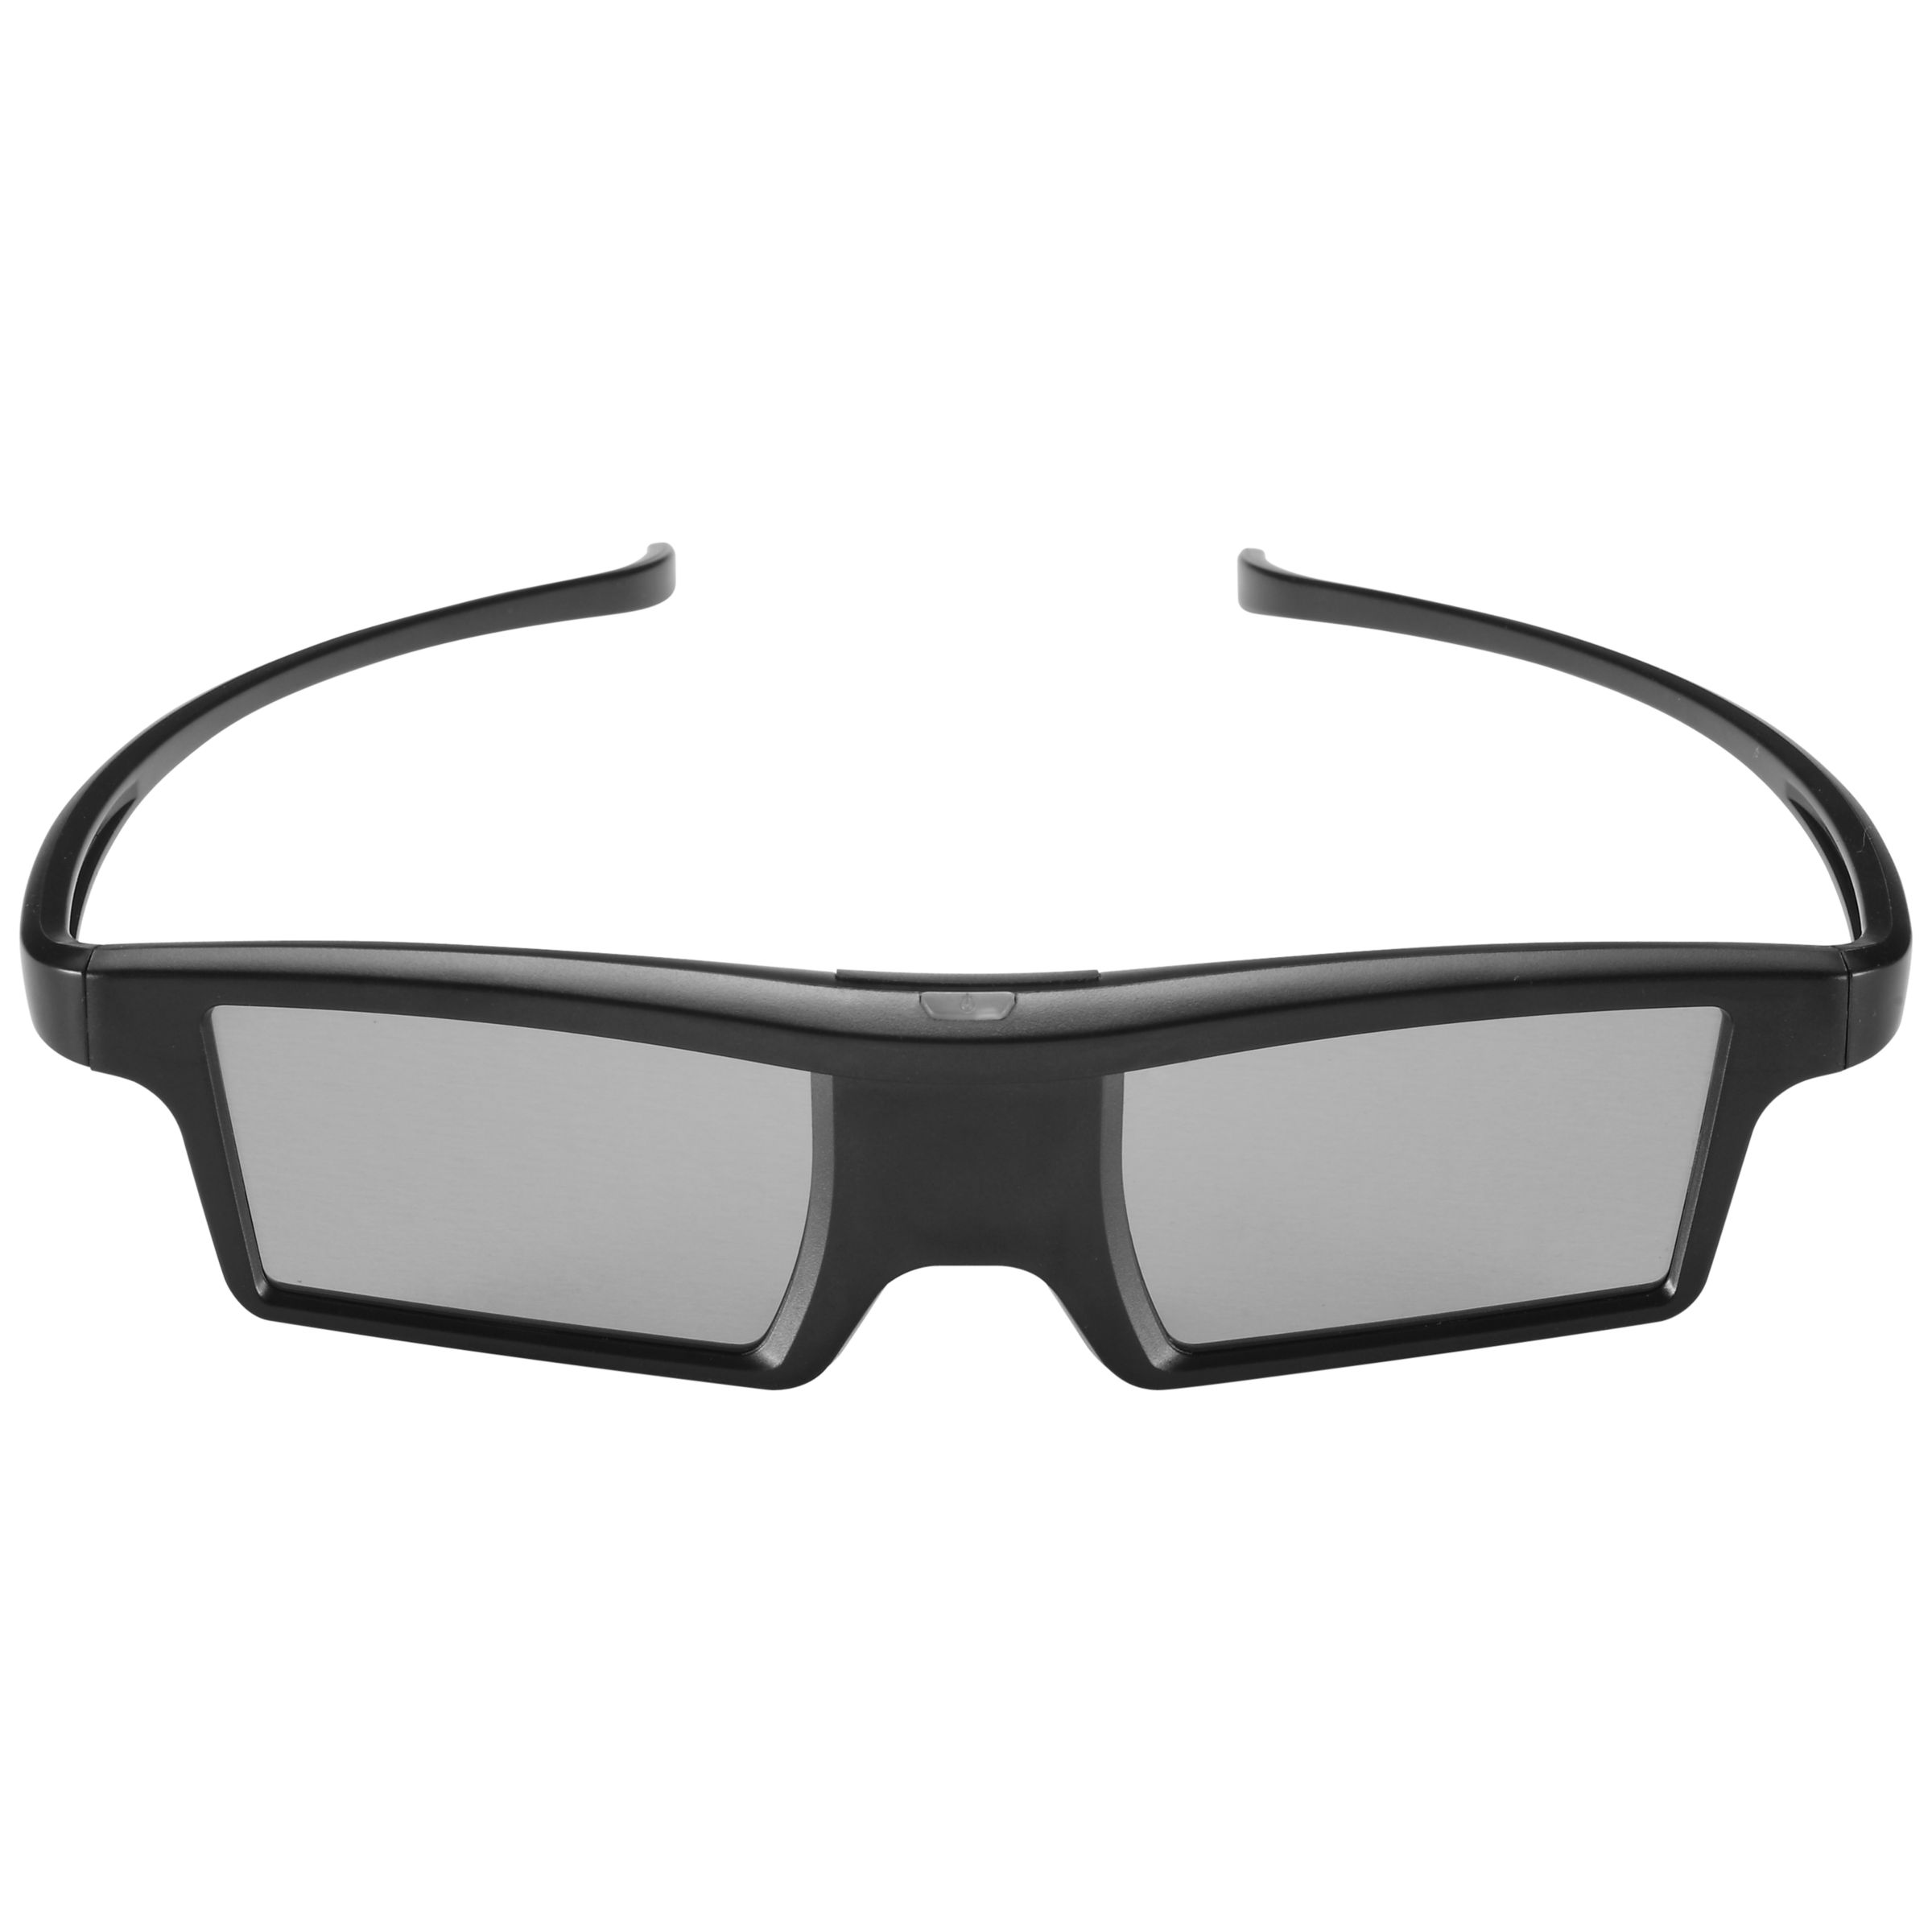 LG AG S360 Active 3D Glasses